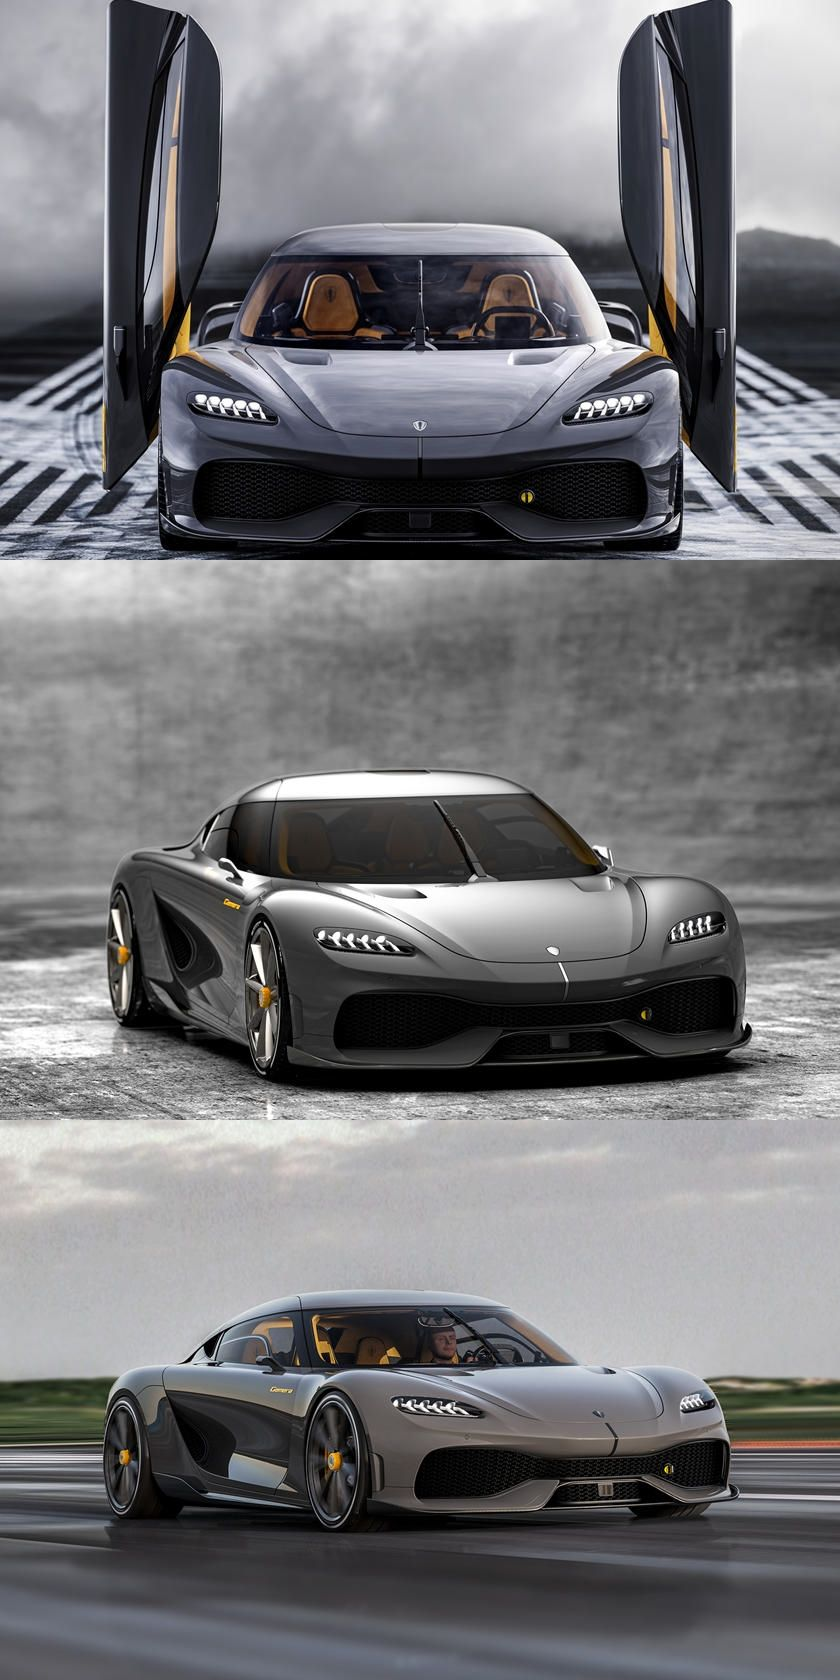 Koenigsegg Gemera Has A Crazy Price Tag But It S Technically The Cheapest Car In Koenigsegg S Lineup In 2020 Koenigsegg Super Cars Sports Cars Luxury